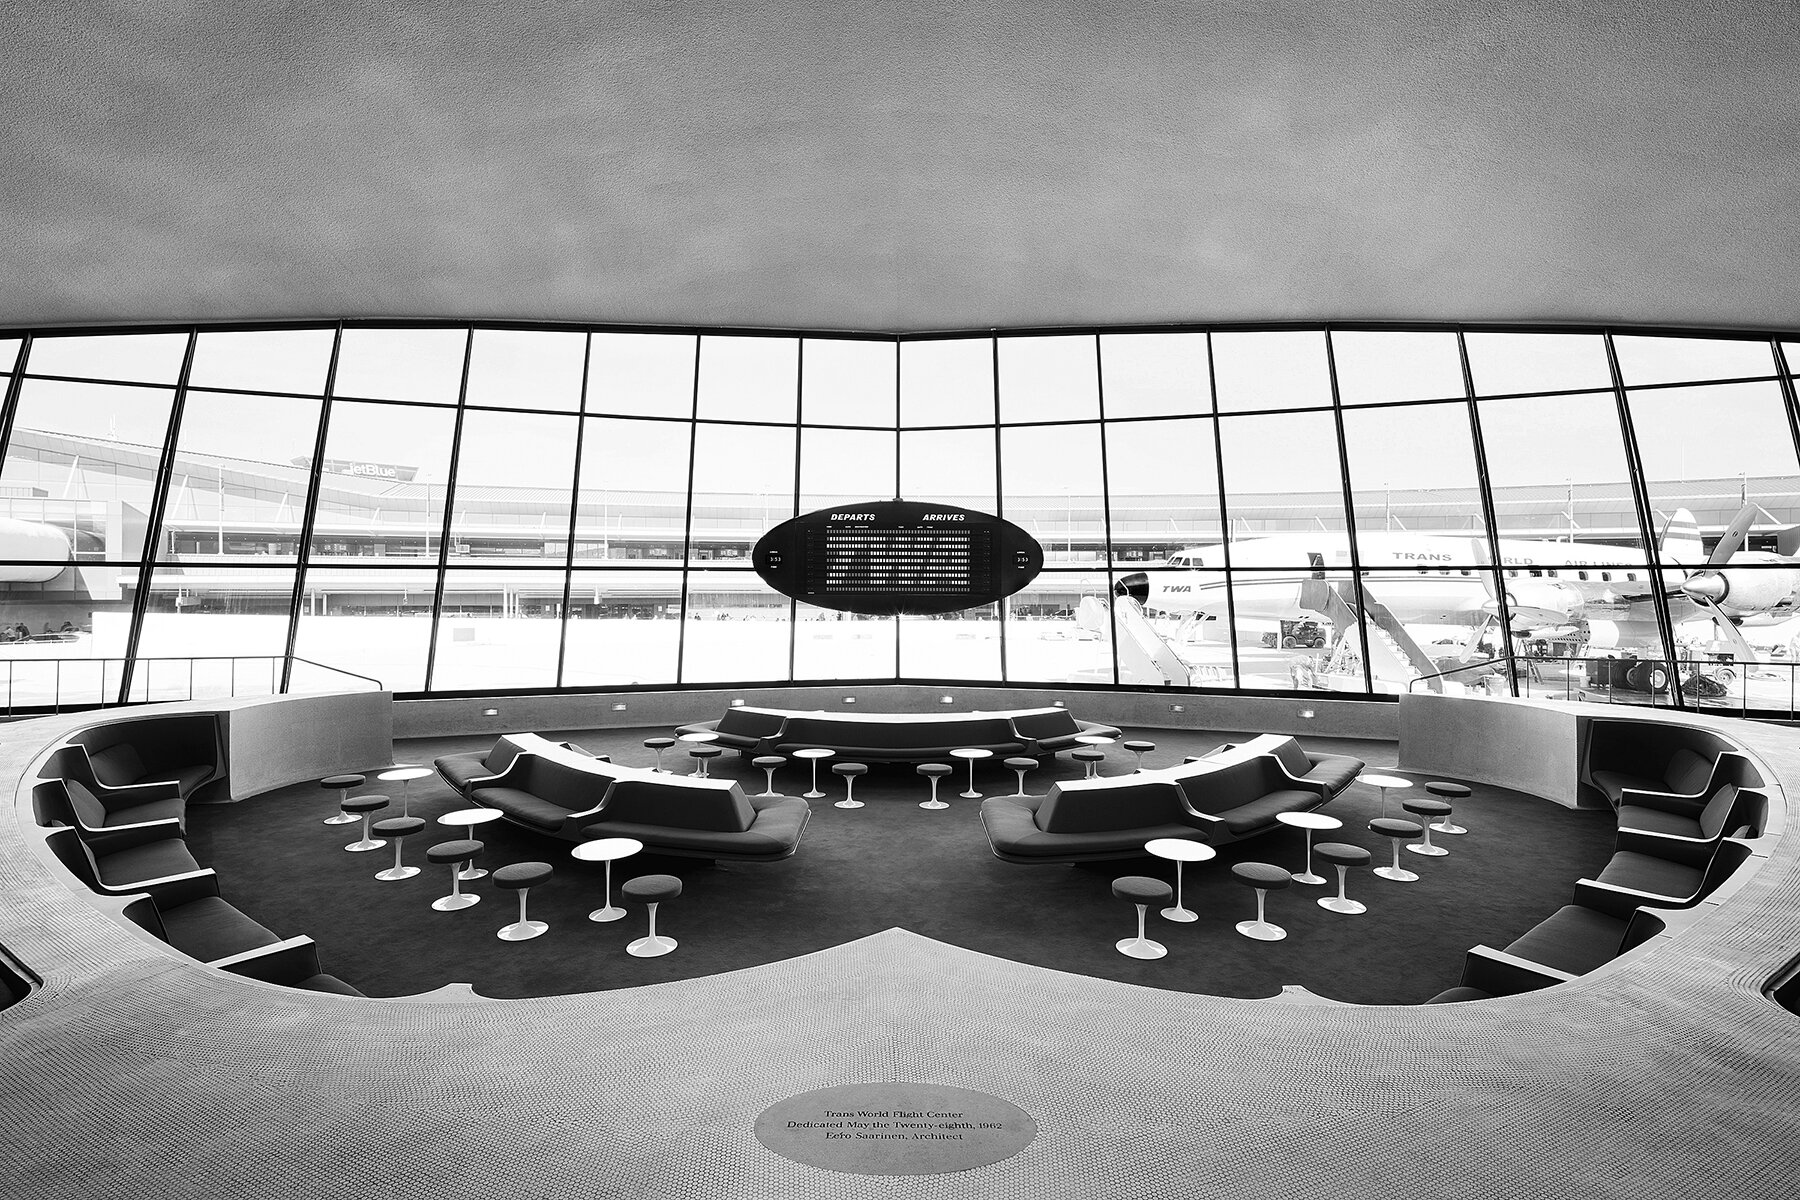 The Sunken Lounge features a split-flap departures board by Solari di Udine and a view of a restored 1958 Lockheed Constellation plane. Photo: David Mitchell. Courtesy TWA Hotel.